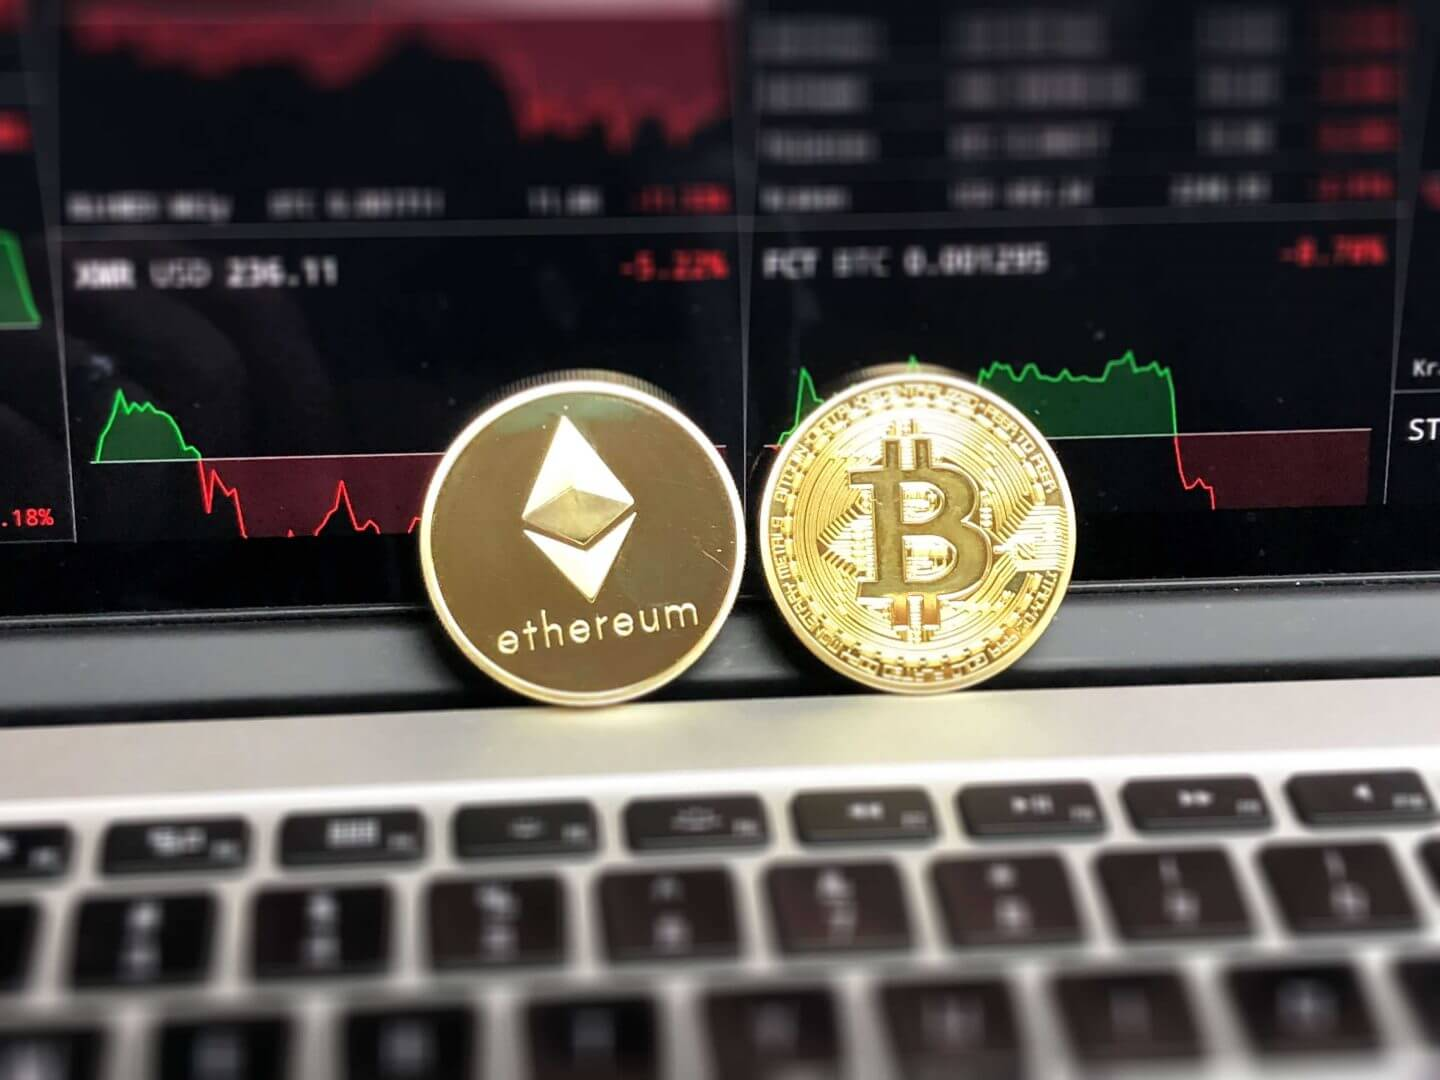 BITCOIN VS ETHEREUM: THE PAST, THE PRESENT AND THE FUTURE